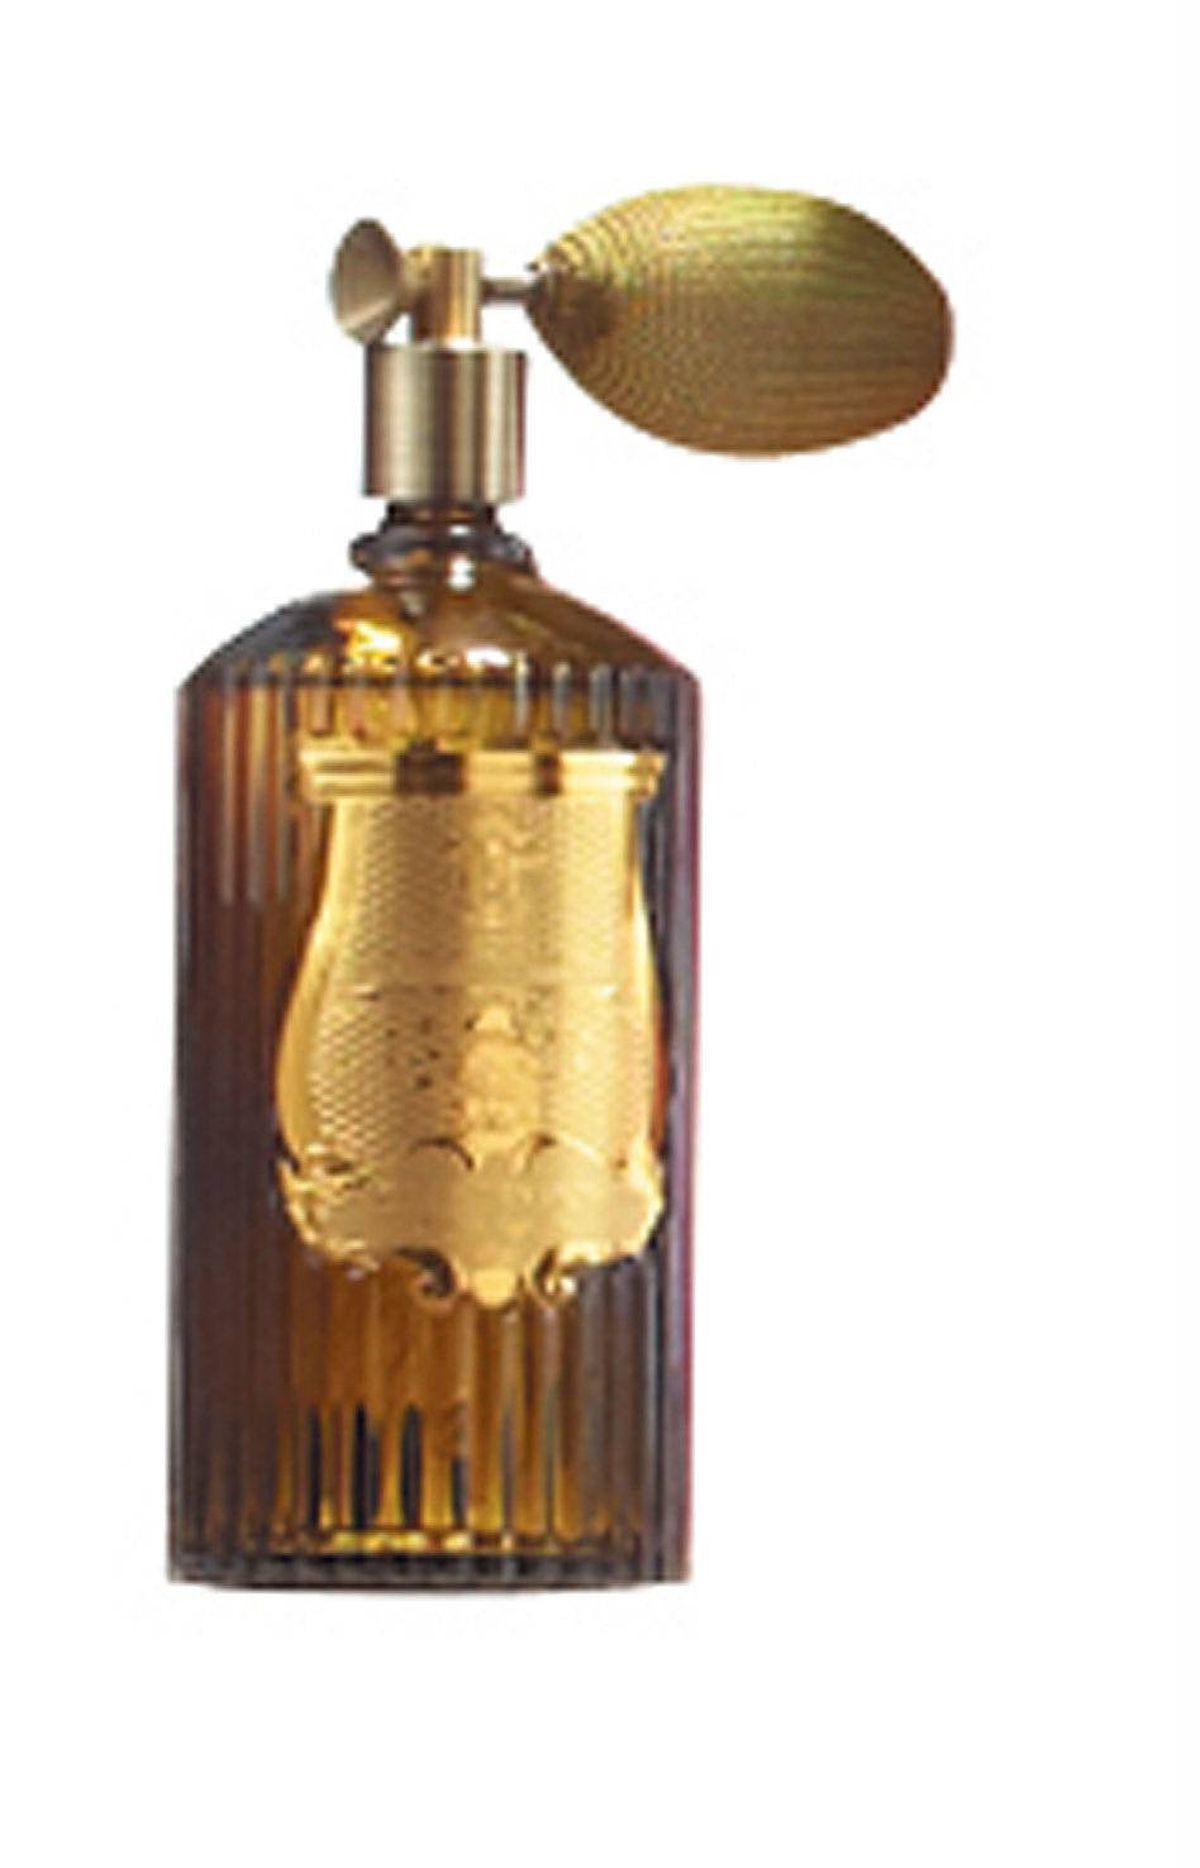 Hand-moulded green-glass Cire Trudon room spray with golden atomiser, $160 at Avenue Road (www.avenue-road.com).